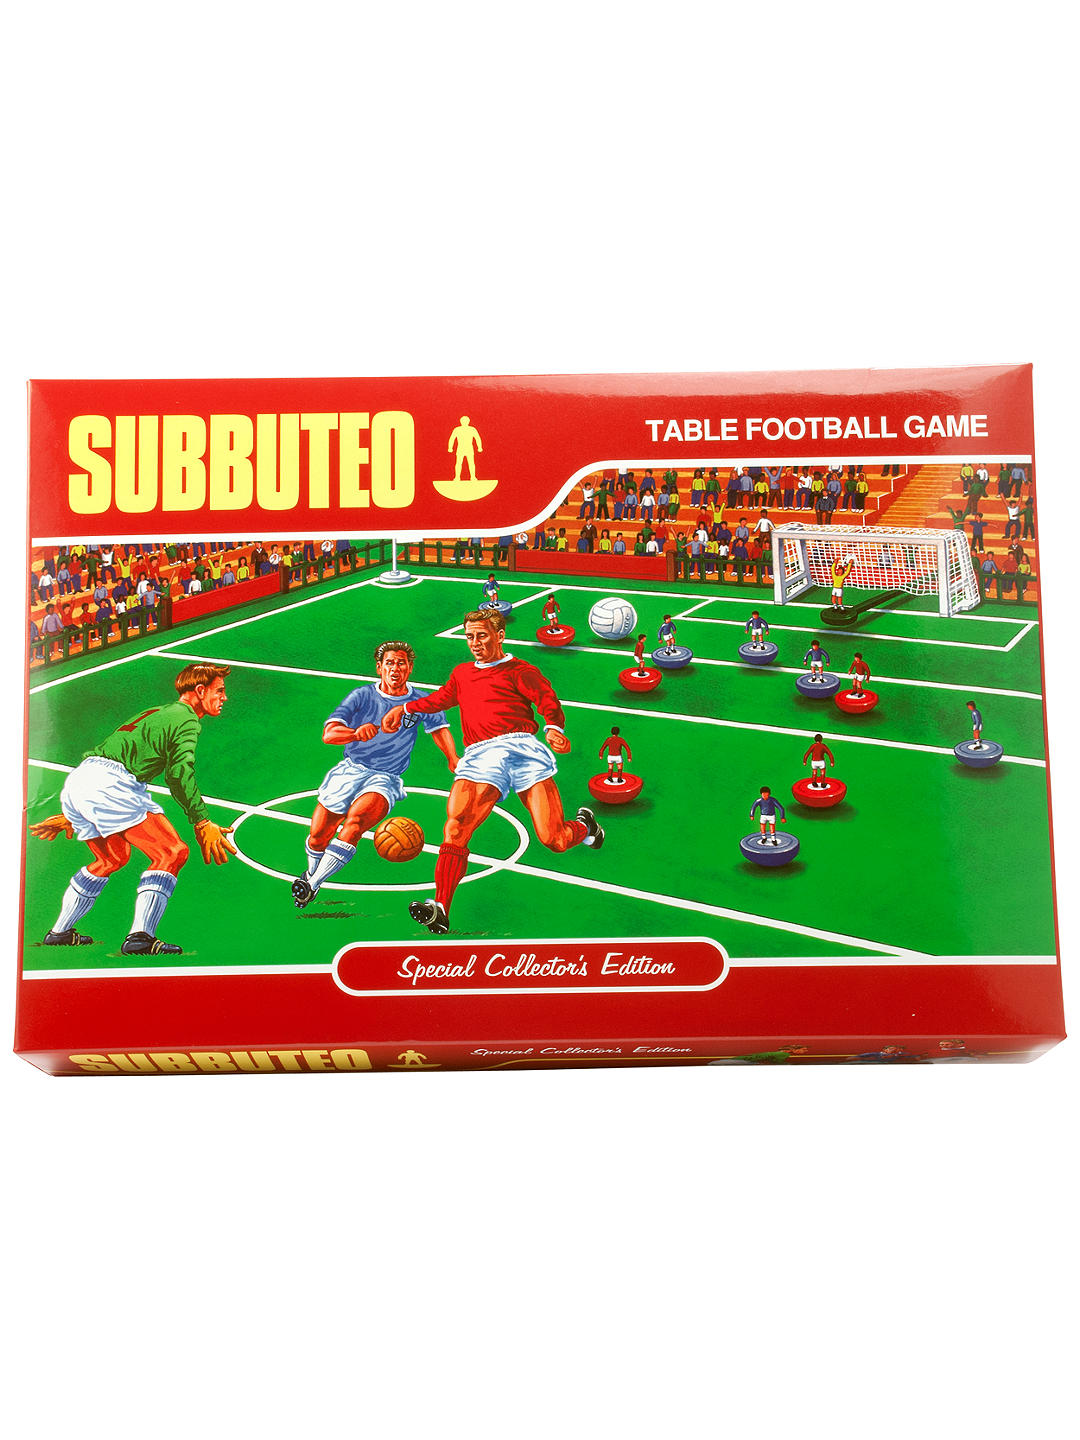 John Lewis has an exclusive vintage-style Subbuteo set for Christmas